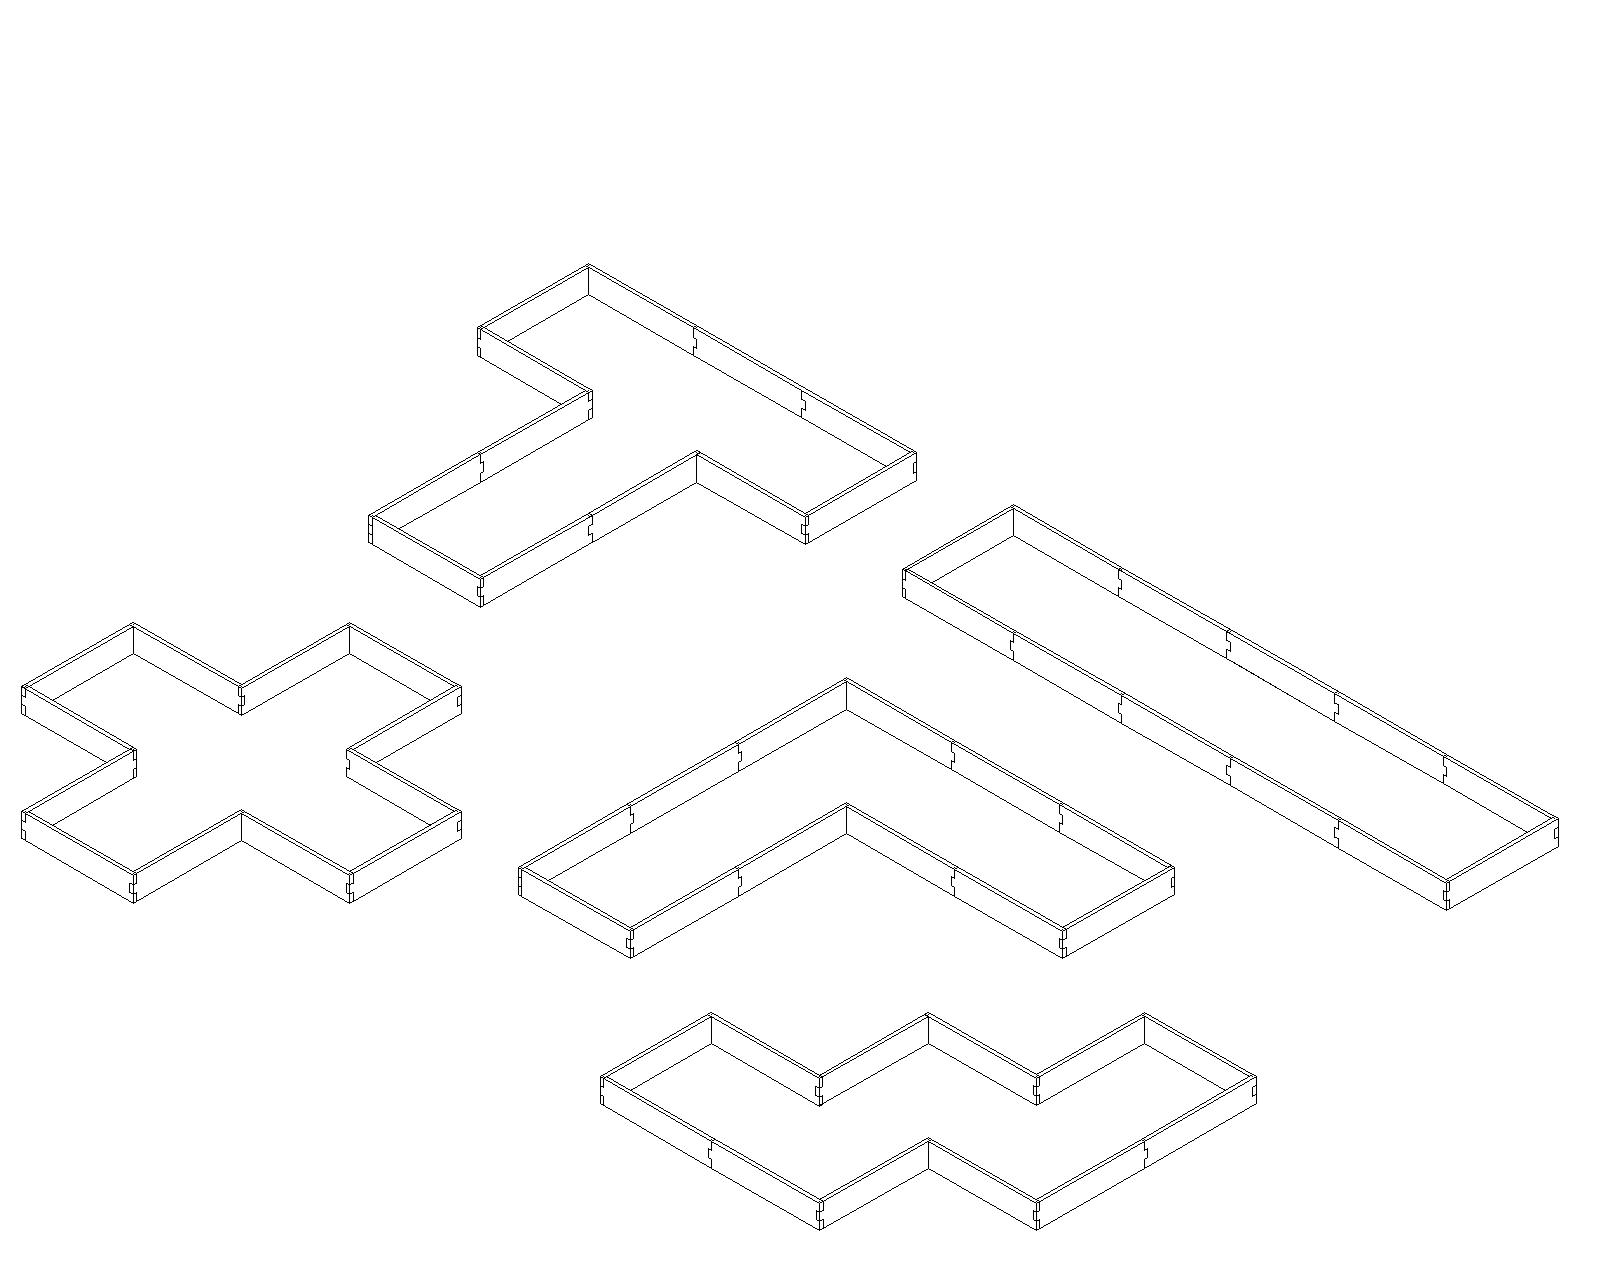 hight resolution of alternate layouts since our garden beds are a modular design our u shaped raised